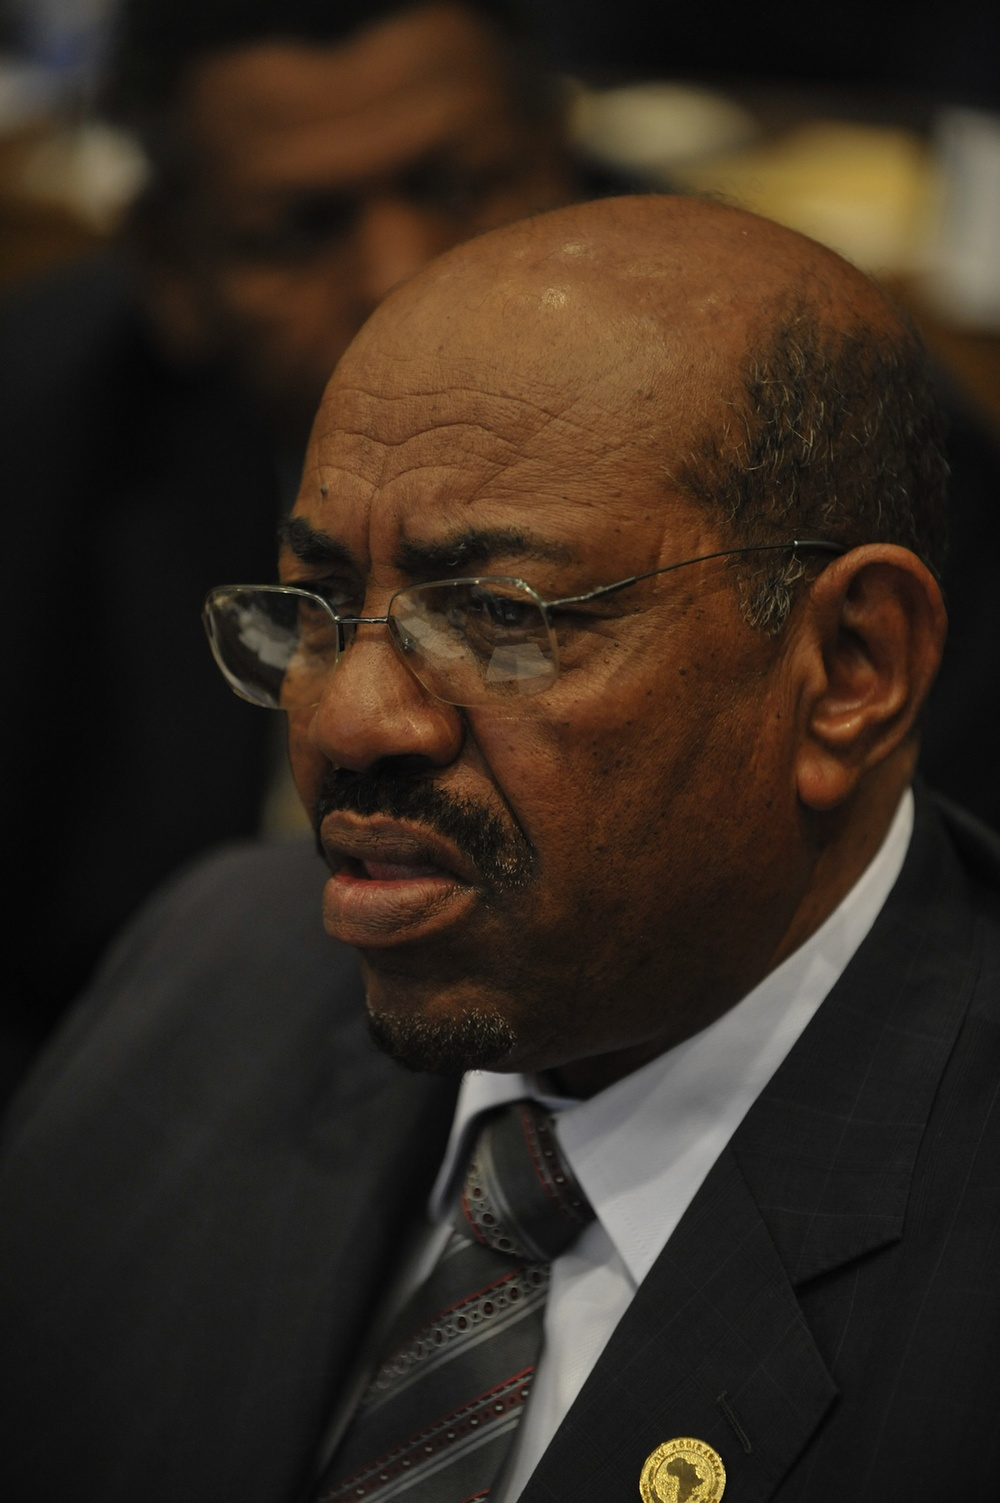 "Click photo to download. Caption: In time for this year's Holocaust Remembrance Day (Yom HaShoah), energetically chasing down modern war criminals such as Sudanese President Omar al-Bashir (pictured) is part of saying ""never again"" and meaning it, writes JNS.org columnist Ben Cohen. Credit: U.S. Navy.              c-font-family:auto; 	mso-font-pitch:variable; 	mso-font-signature:3 0 0 0 1 0;} @font-face 	{font-family:""MS 明朝""; 	mso-font-charset:78; 	mso-generic-font-family:auto; 	mso-font-pitch:variable; 	mso-font-signature:1 134676480 16 0 131072 0;} @font-face 	{font-family:""Cambria Math""; 	panose-1:2 4 5 3 5 4 6 3 2 4; 	mso-font-charset:0; 	mso-generic-font-family:auto; 	mso-font-pitch:variable; 	mso-font-signature:-536870145 1107305727 0 0 415 0;} @font-face 	{font-family:Cambria; 	panose-1:2 4 5 3 5 4 6 3 2 4; 	mso-font-charset:0; 	mso-generic-font-family:auto; 	mso-font-pitch:variable; 	mso-font-signature:-536870145 1073743103 0 0 415 0;}  /* Style Definitions */ p.MsoNormal, li.MsoNormal, div.MsoNormal 	{mso-style-unhide:no; 	mso-style-qformat:yes; 	mso-style-parent:""""; 	margin:0in; 	margin-bottom:.0001pt; 	mso-pagination:widow-orphan; 	font-size:12.0pt; 	font-family:Cambria; 	mso-ascii-font-family:Cambria; 	mso-ascii-theme-font:minor-latin; 	mso-fareast-font-family:""MS 明朝""; 	mso-fareast-theme-font:minor-fareast; 	mso-hansi-font-family:Cambria; 	mso-hansi-theme-font:minor-latin; 	mso-bidi-font-family:""Times New Roman""; 	mso-bidi-theme-font:minor-bidi;} .MsoChpDefault 	{mso-style-type:export-only; 	mso-default-props:yes; 	font-family:Cambria; 	mso-ascii-font-family:Cambria; 	mso-ascii-theme-font:minor-latin; 	mso-fareast-font-family:""MS 明朝""; 	mso-fareast-theme-font:minor-fareast; 	mso-hansi-font-family:Cambria; 	mso-hansi-theme-font:minor-latin; 	mso-bidi-font-family:""Times New Roman""; 	mso-bidi-theme-font:minor-bidi;} @page WordSection1 	{size:8.5in 11.0in; 	margin:1.0in 1.25in 1.0in 1.25in; 	mso-header-margin:.5in; 	mso-footer-margin:.5in; 	mso-paper-source:0;} div.WordSection1 	{page:WordSection1;} -->"